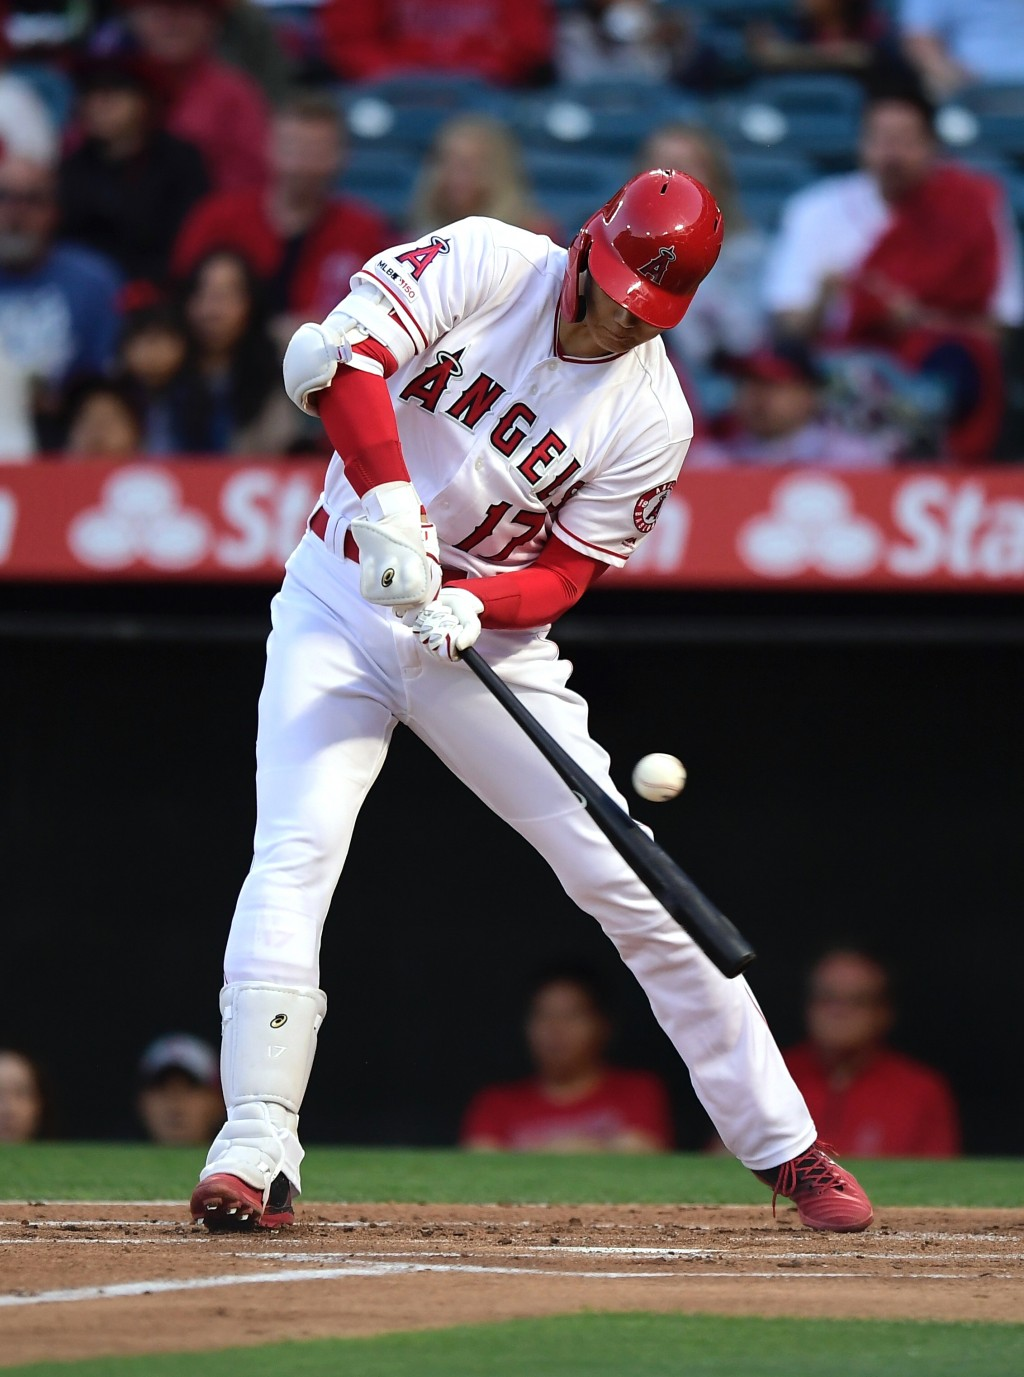 Los Angeles Angels' Shohei Ohtani, of Japan, swings for strike three during the first inning of the team's baseball game against the Kansas City Royal